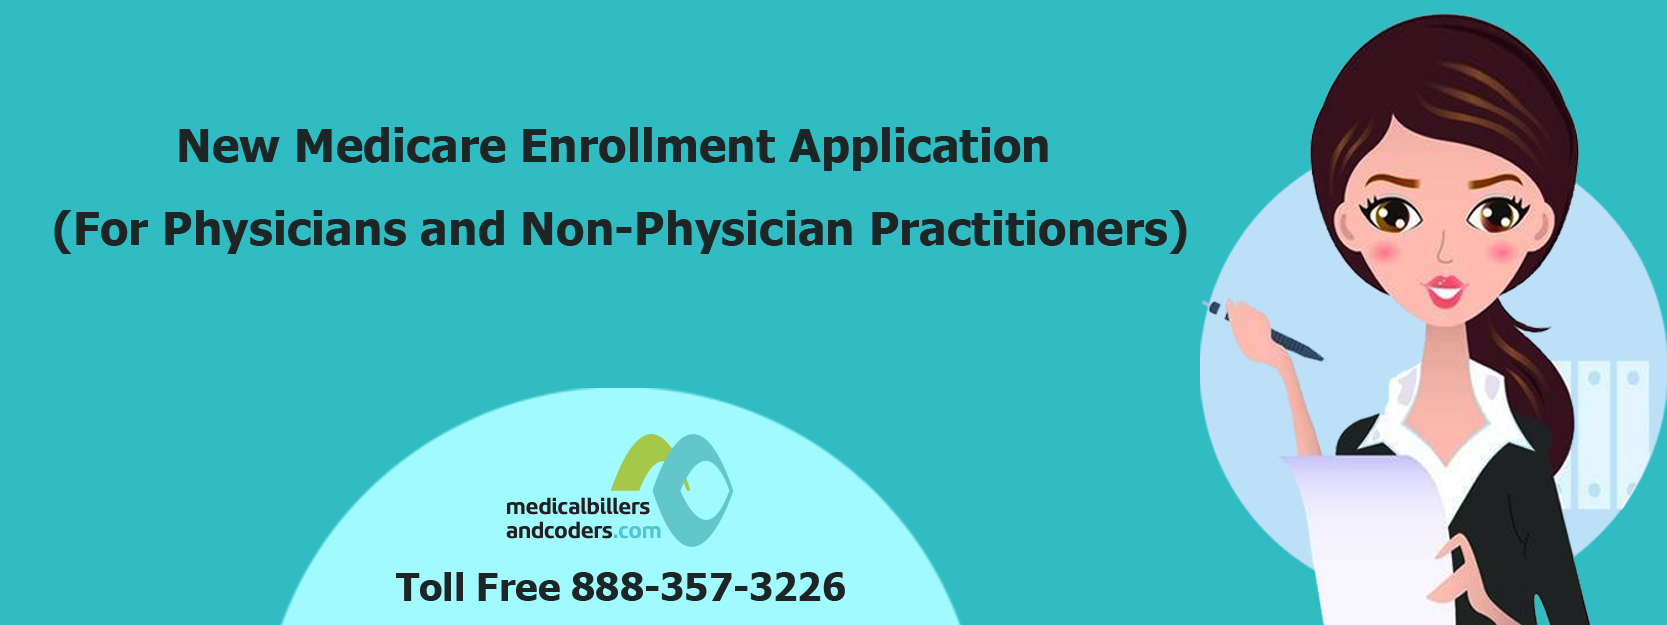 New Medicare Enrollment Application (For Physicians and Non-Physician Practitioners)